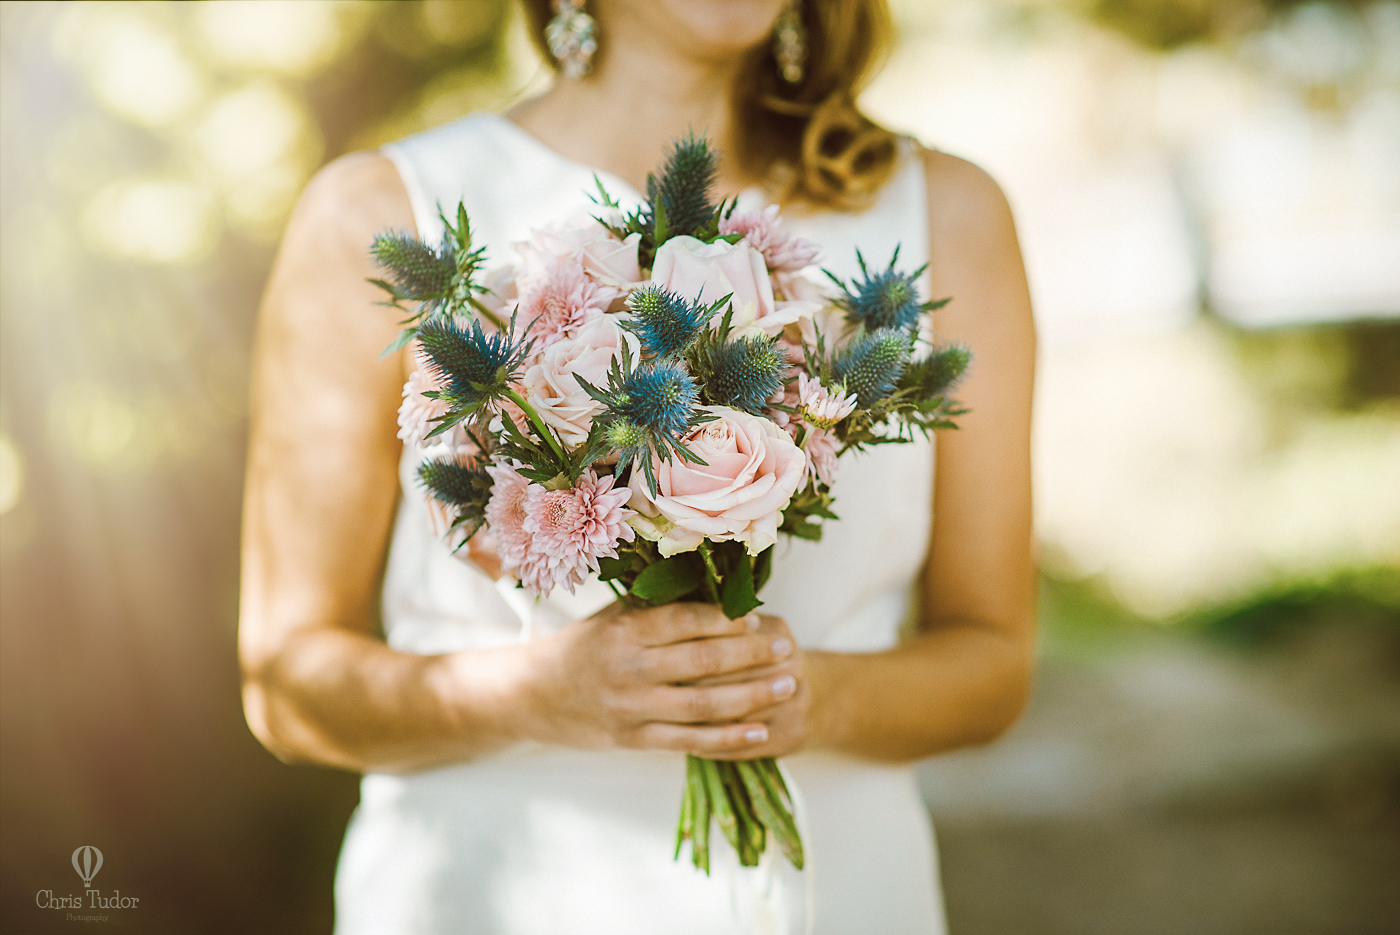 The blue thistles were a great choice for a bridal bouquet.